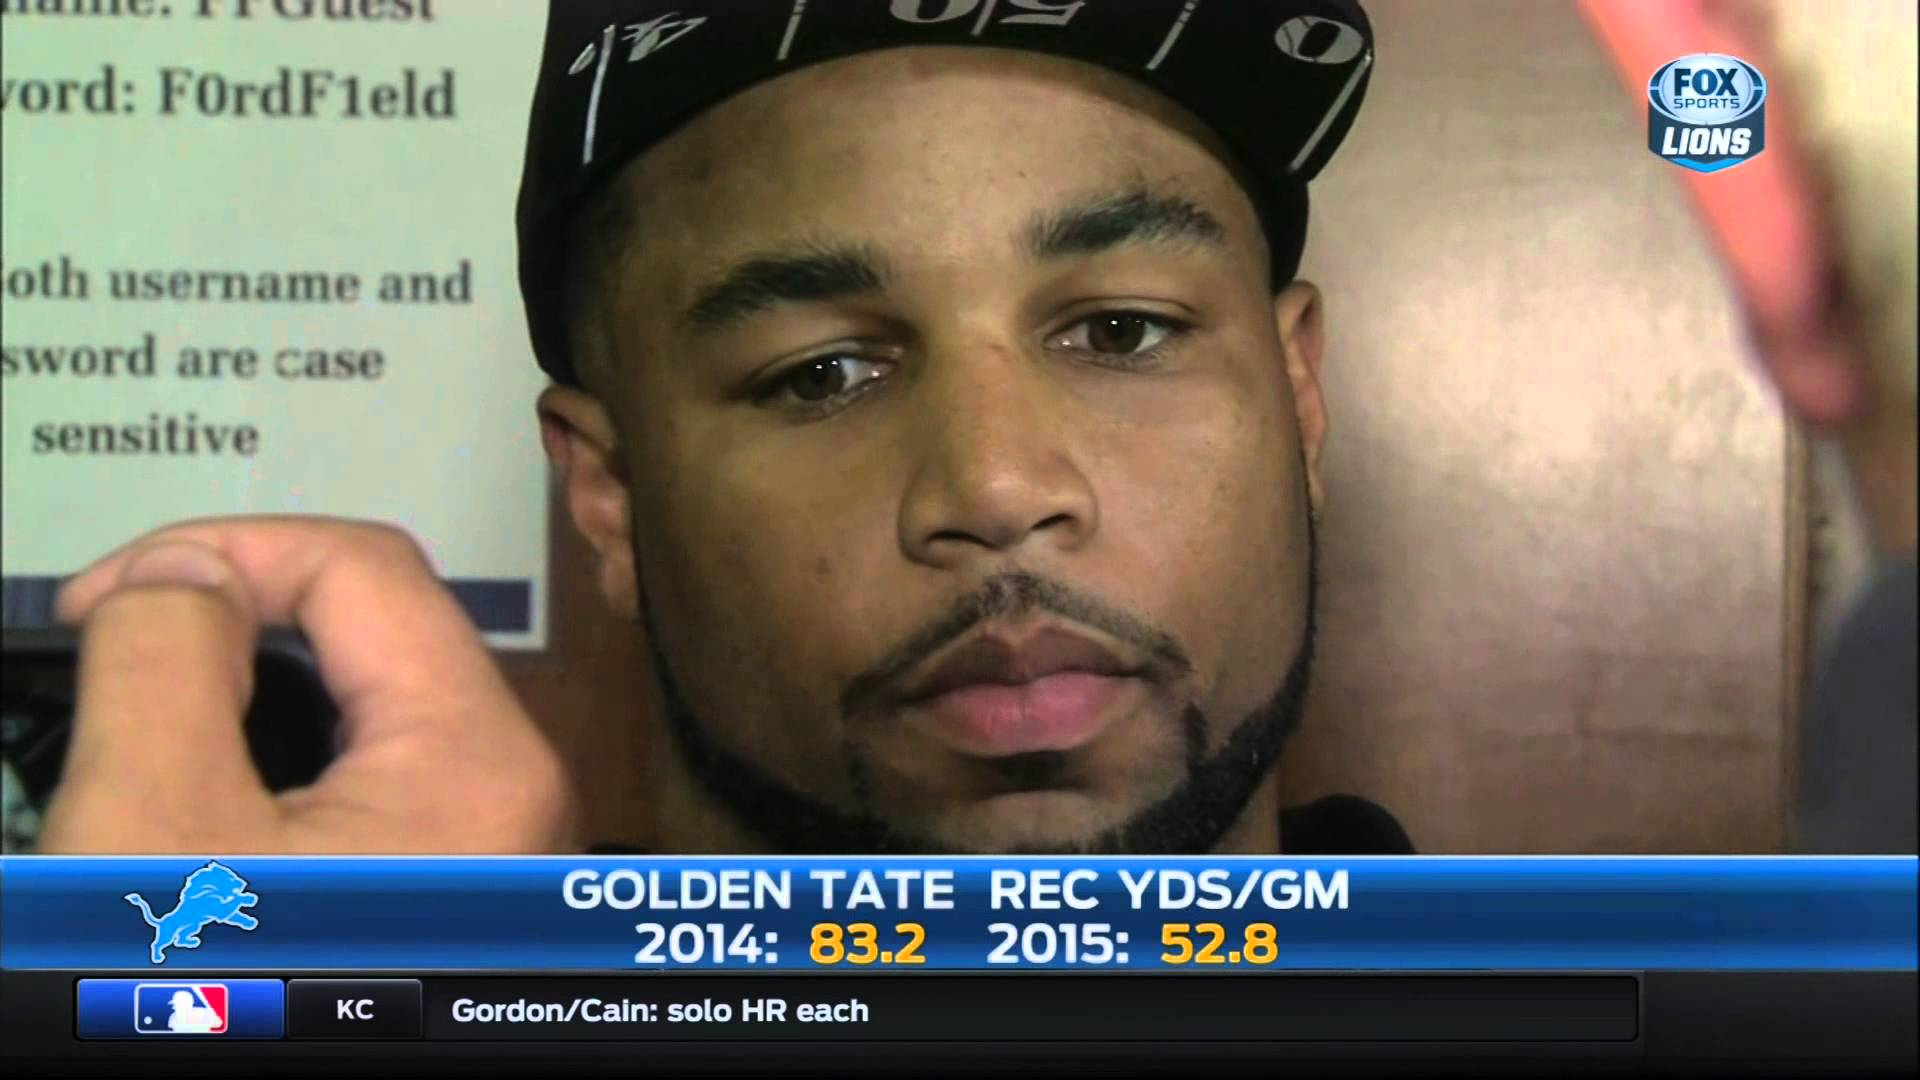 Golden Tate says Lions fans